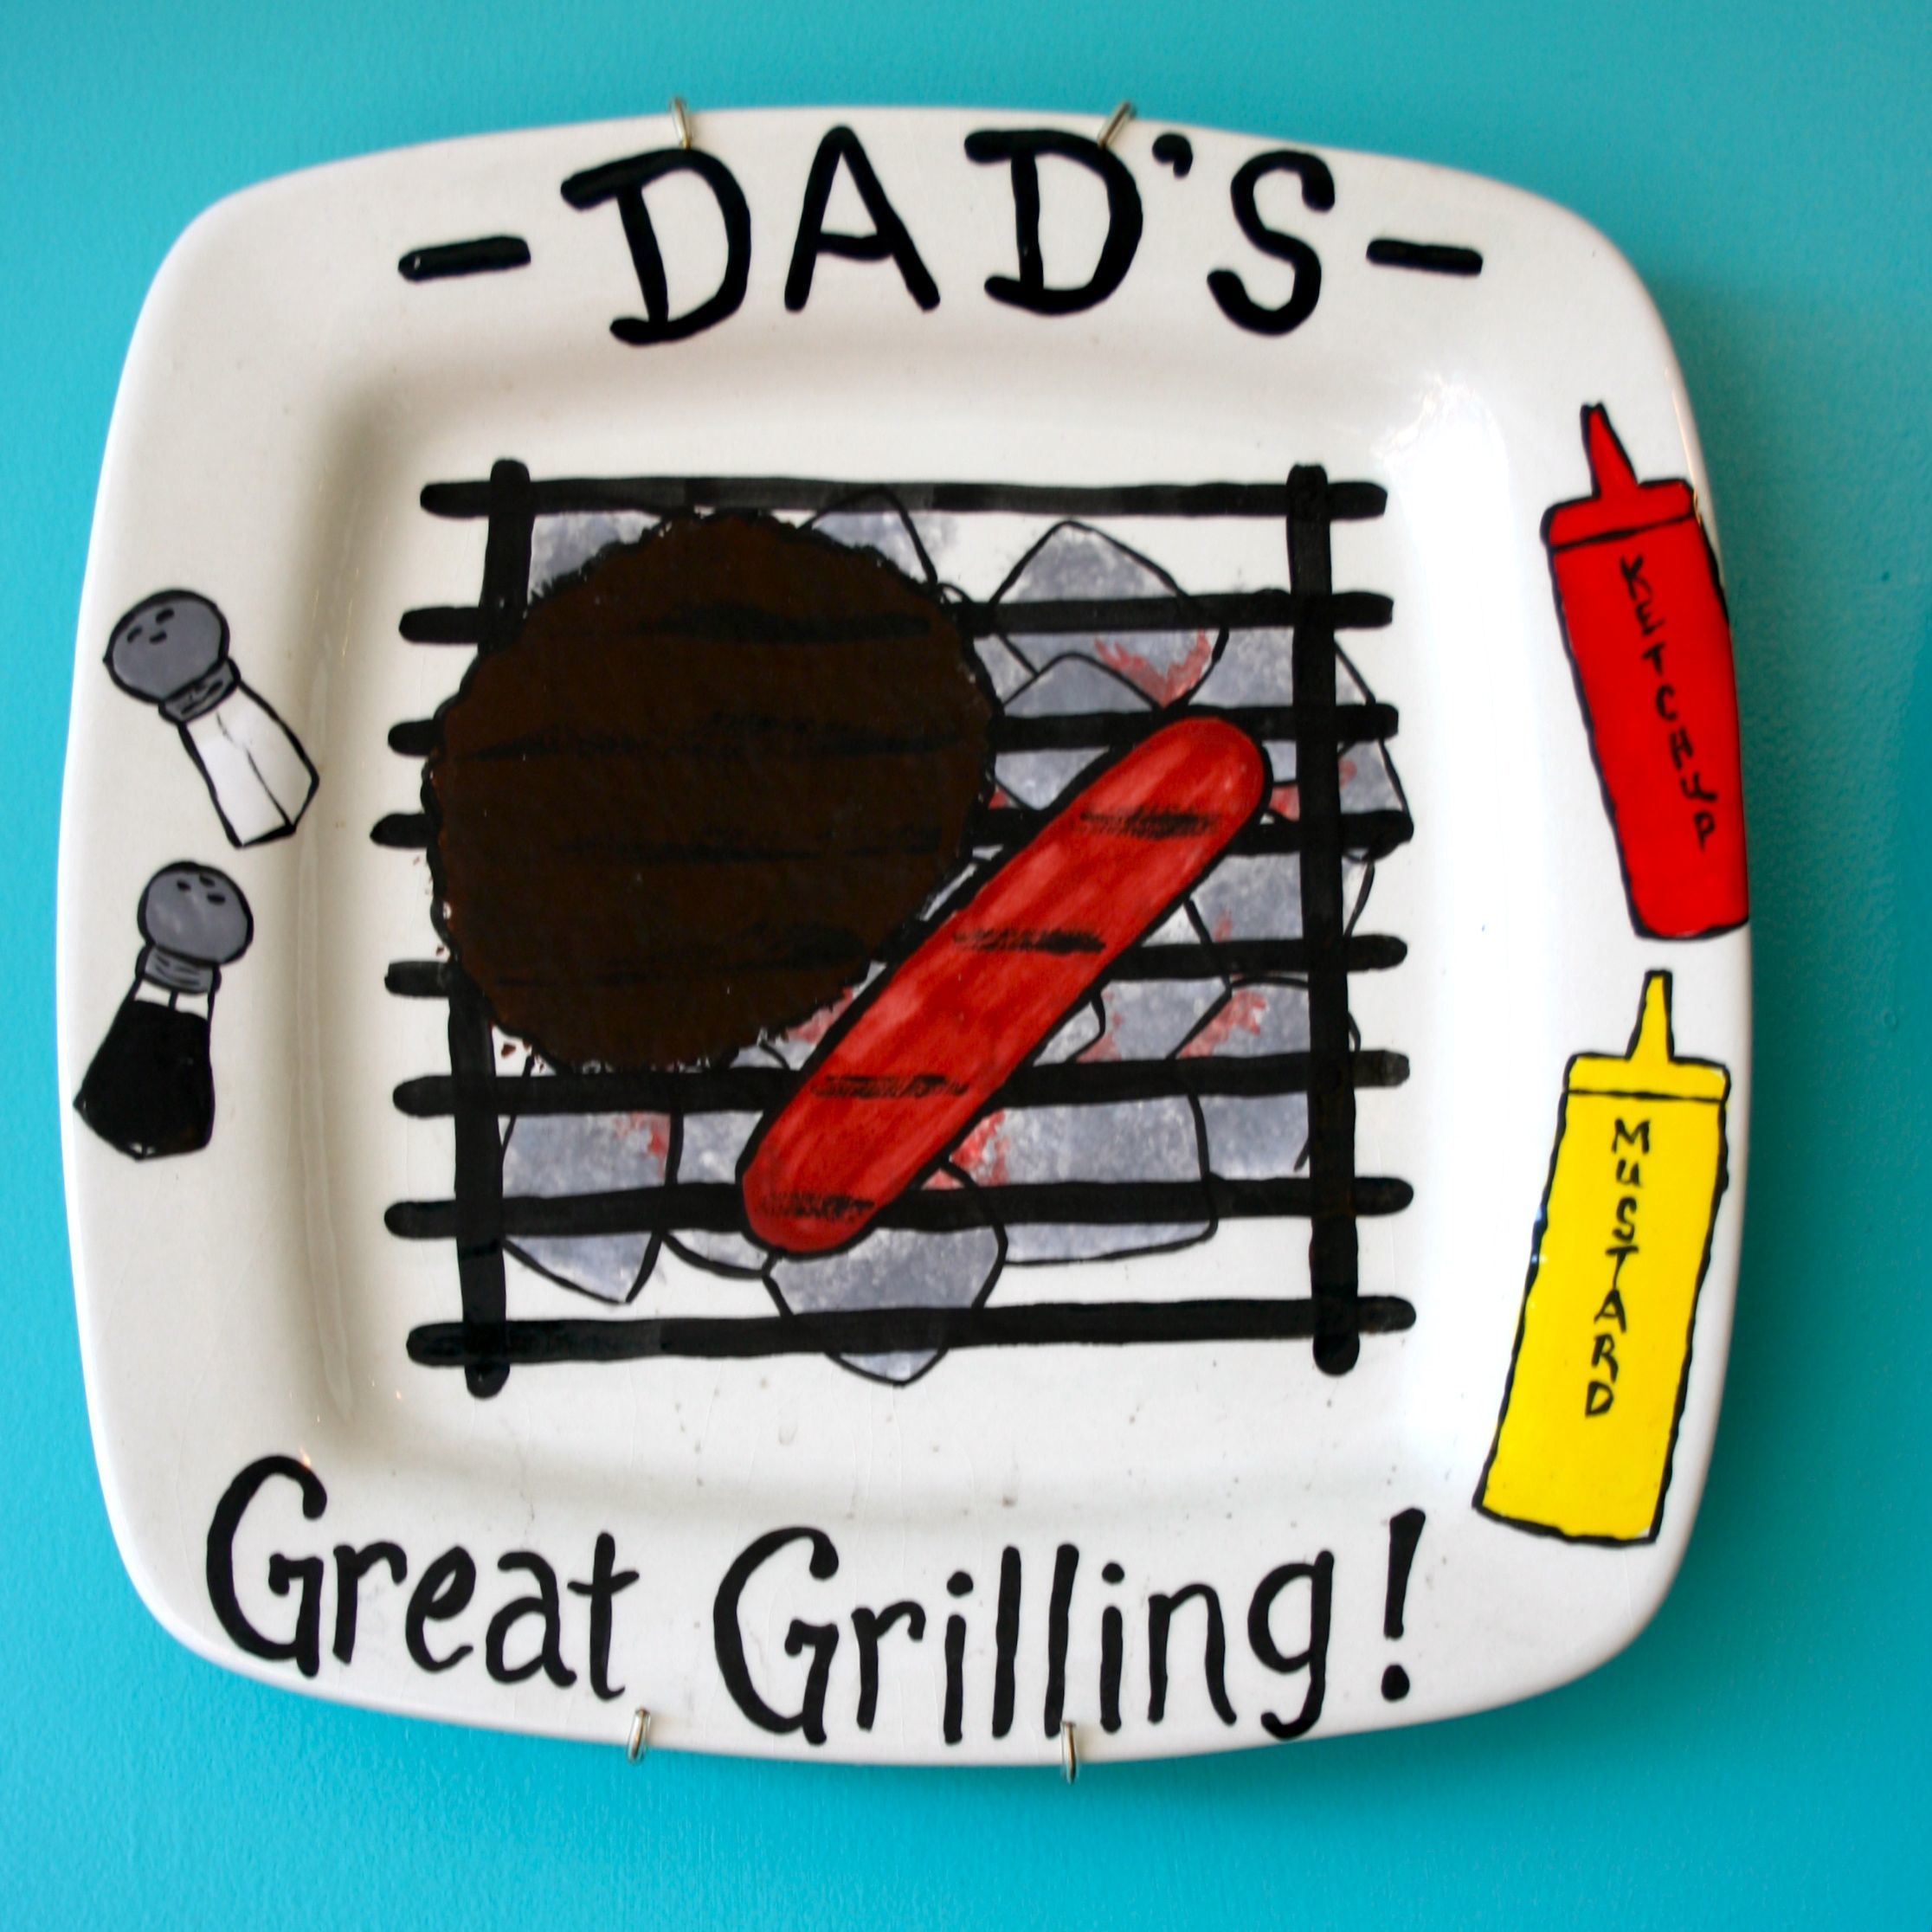 pDadsGrilling.jpg